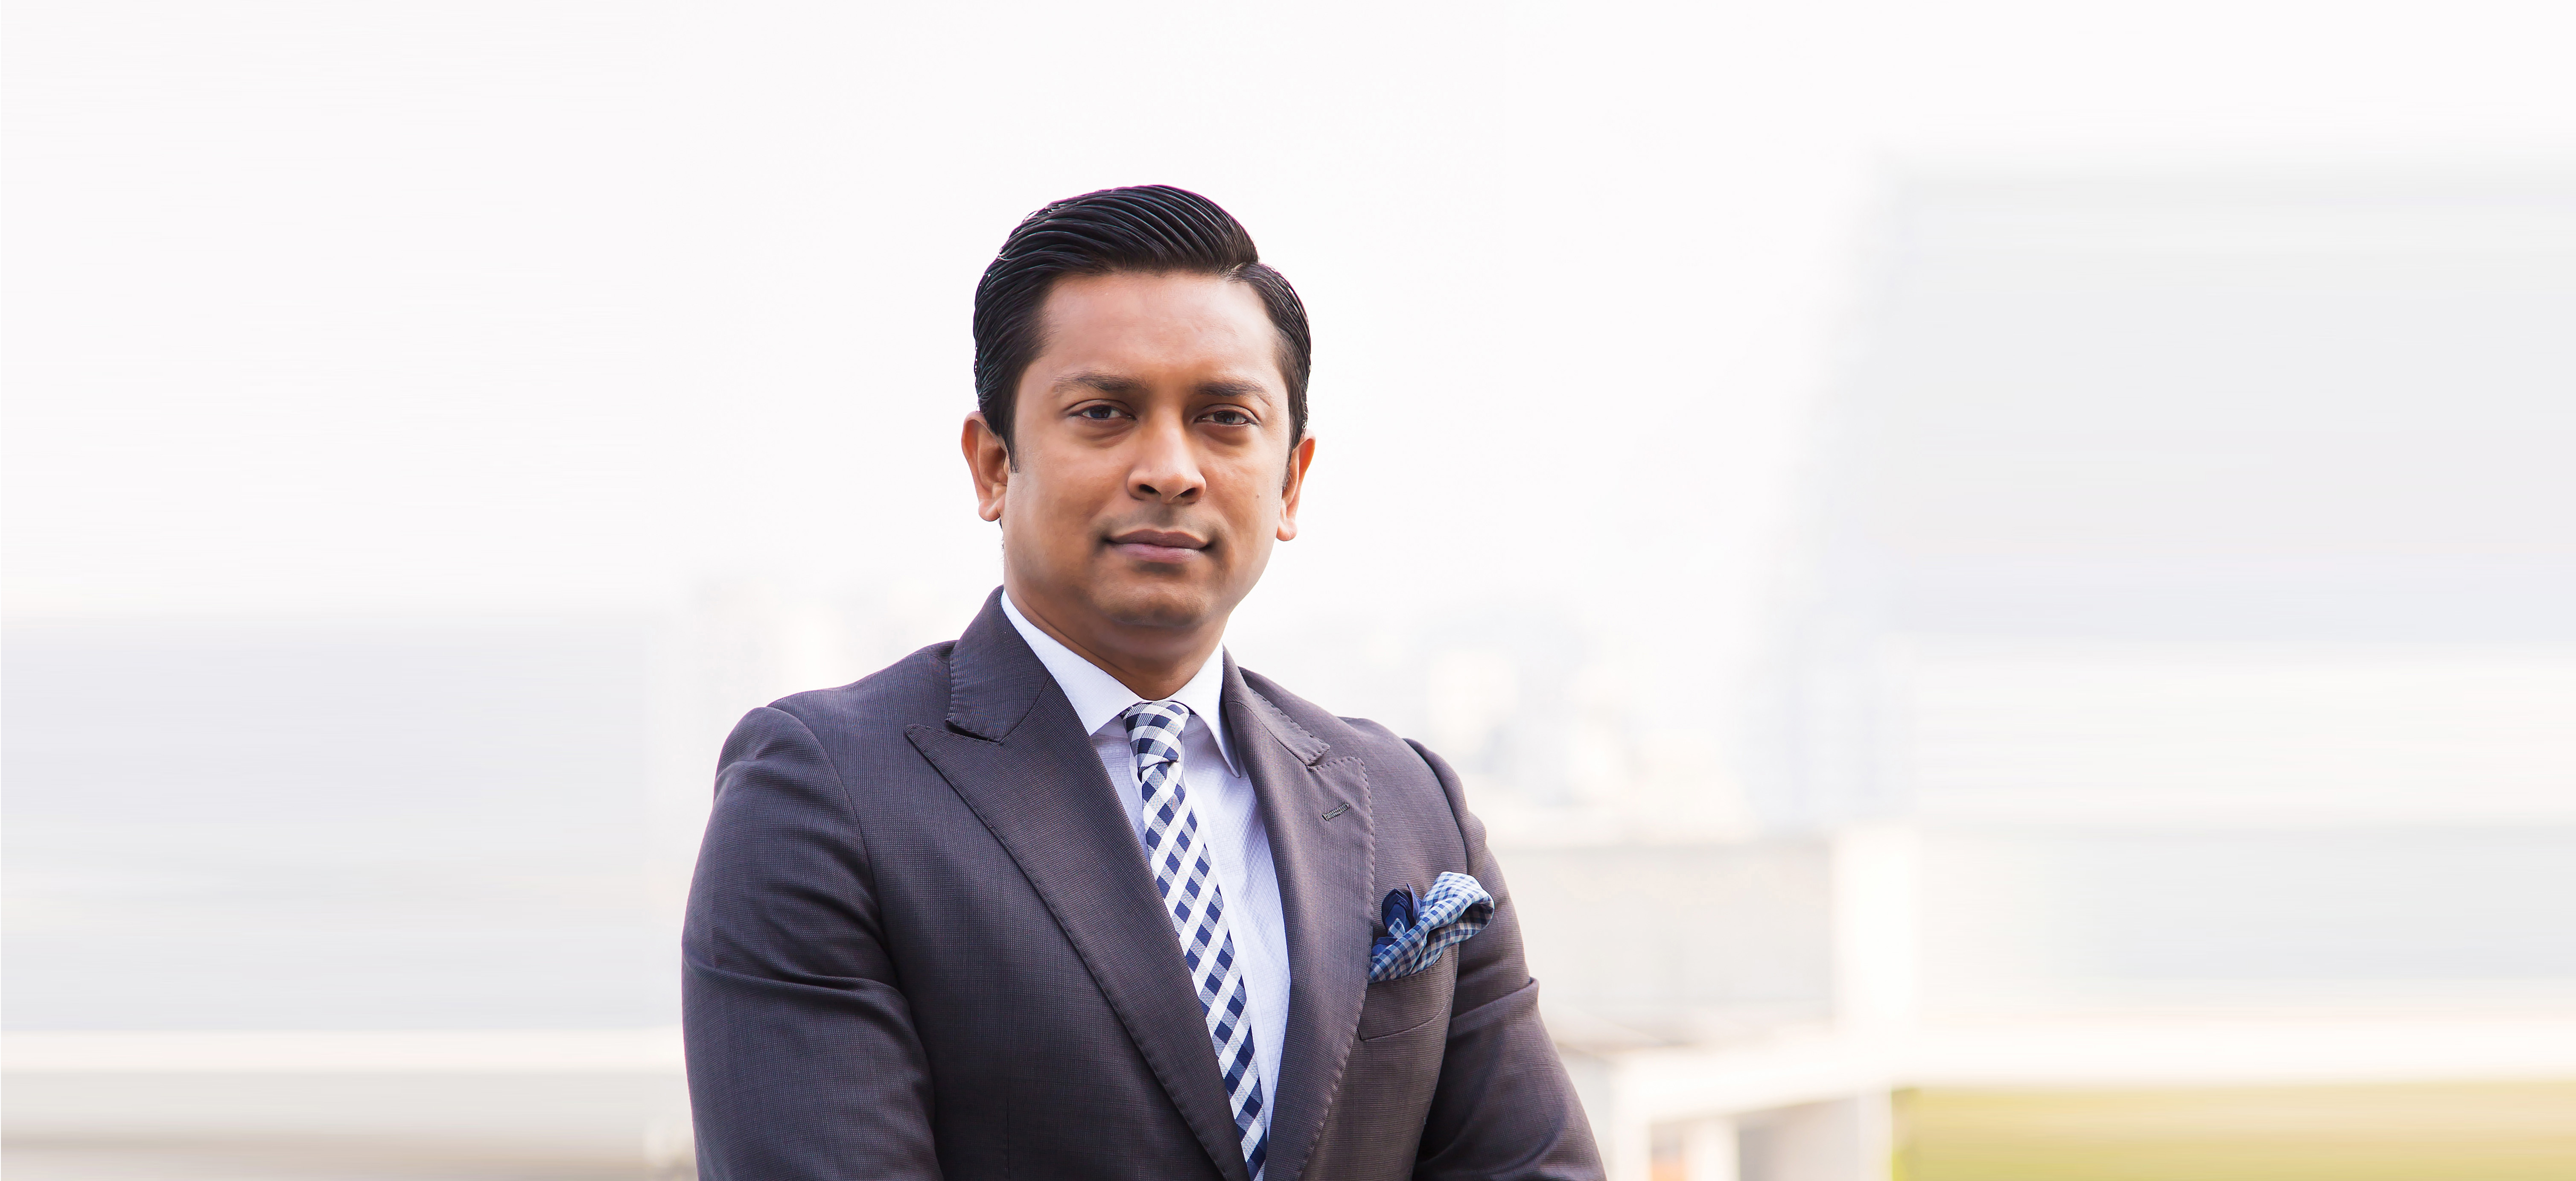 Appointment of MD. Al-Amin as the General Manager at Six Seasons Hotel